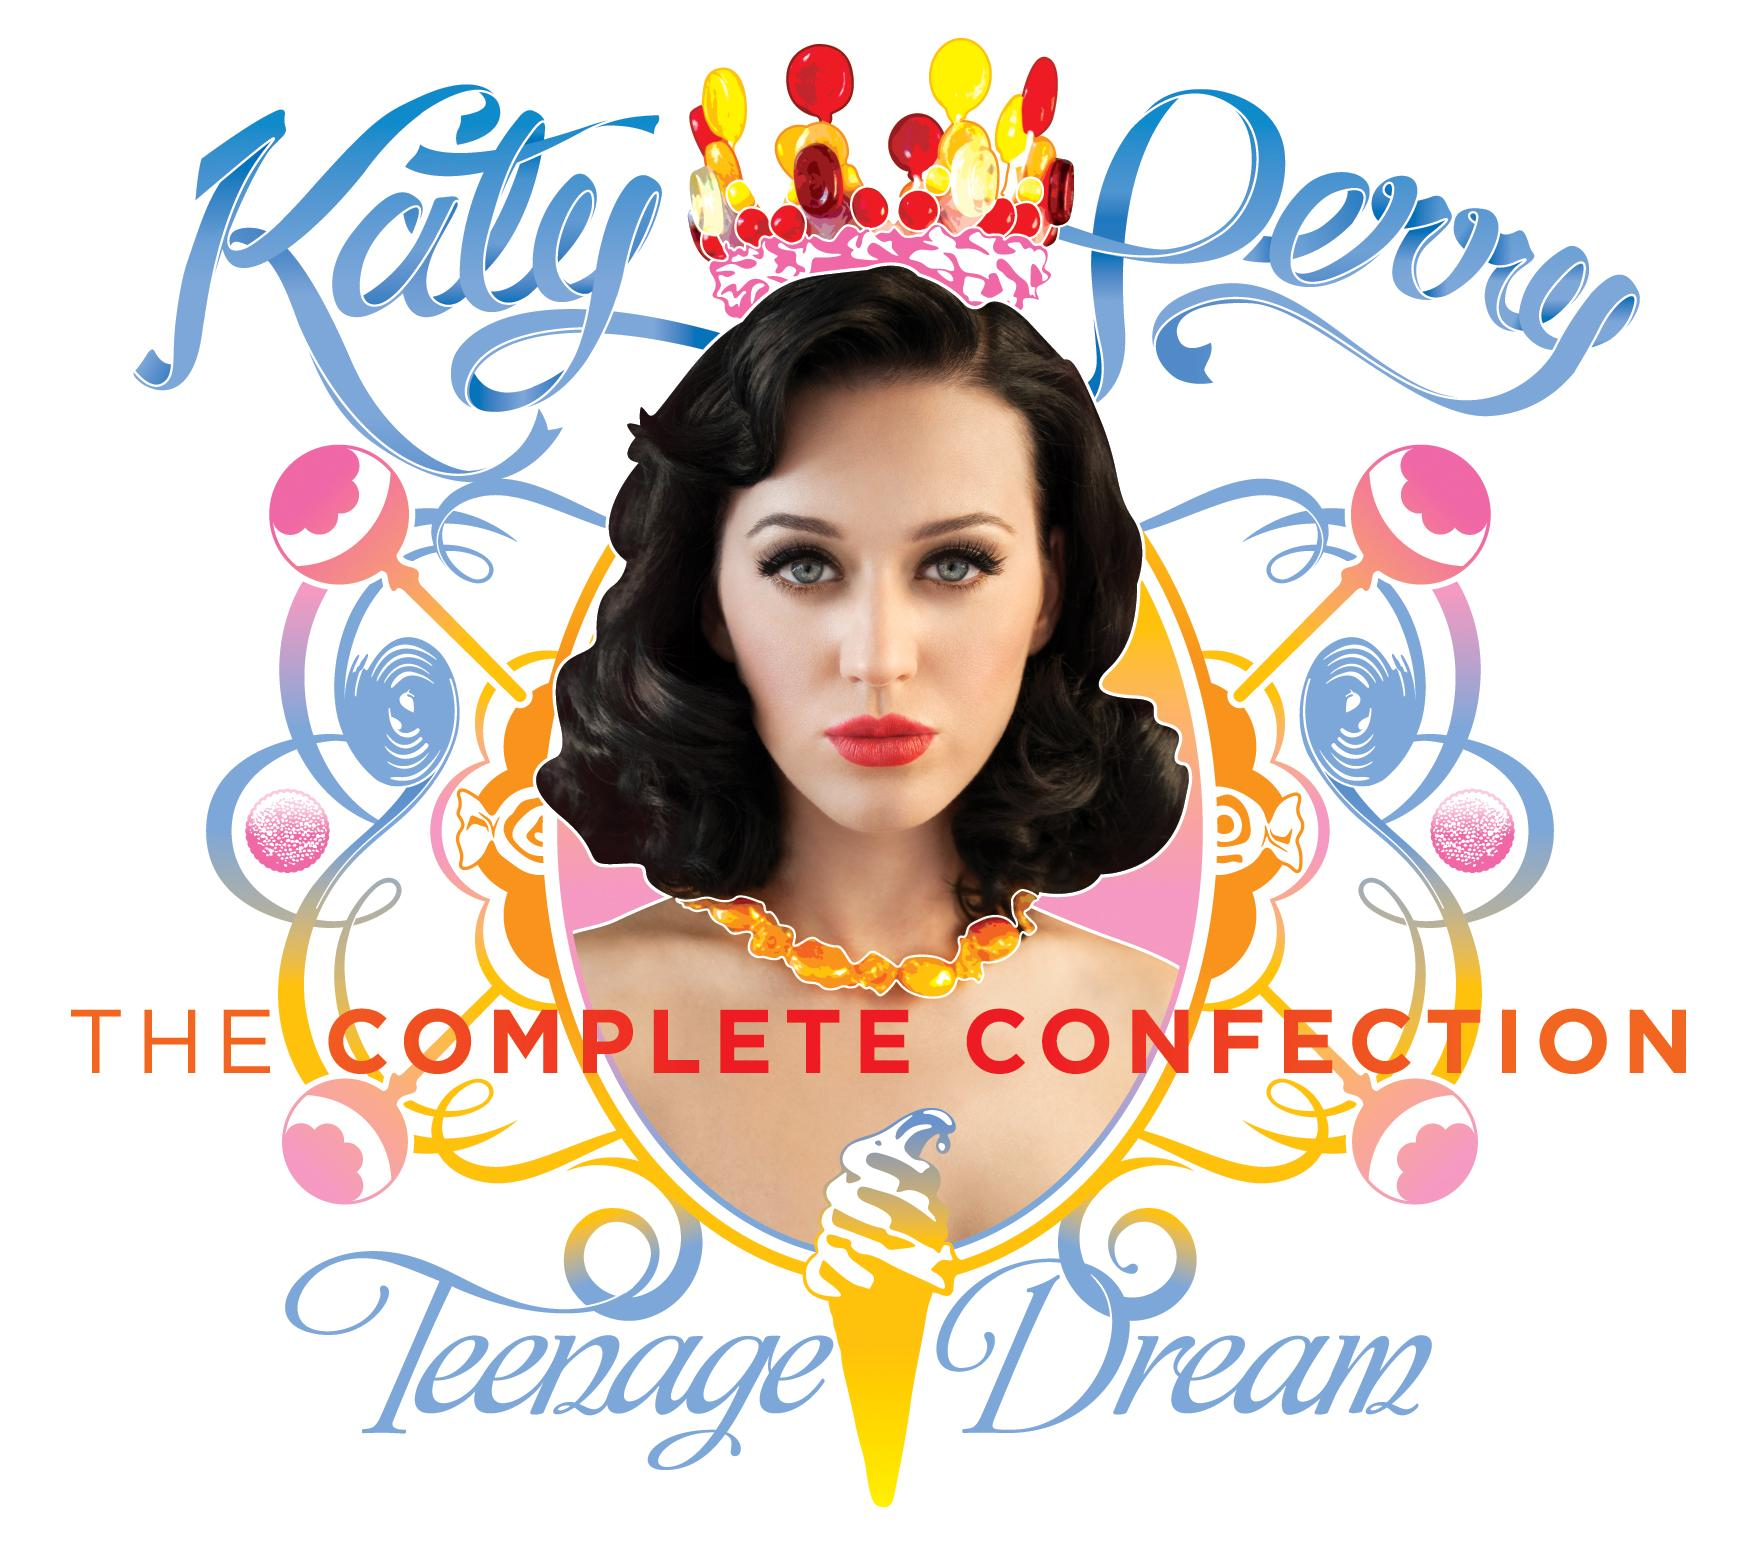 http://images.wikia.com/katyperry/images/1/14/TD-TheCompleteConfection.jpg